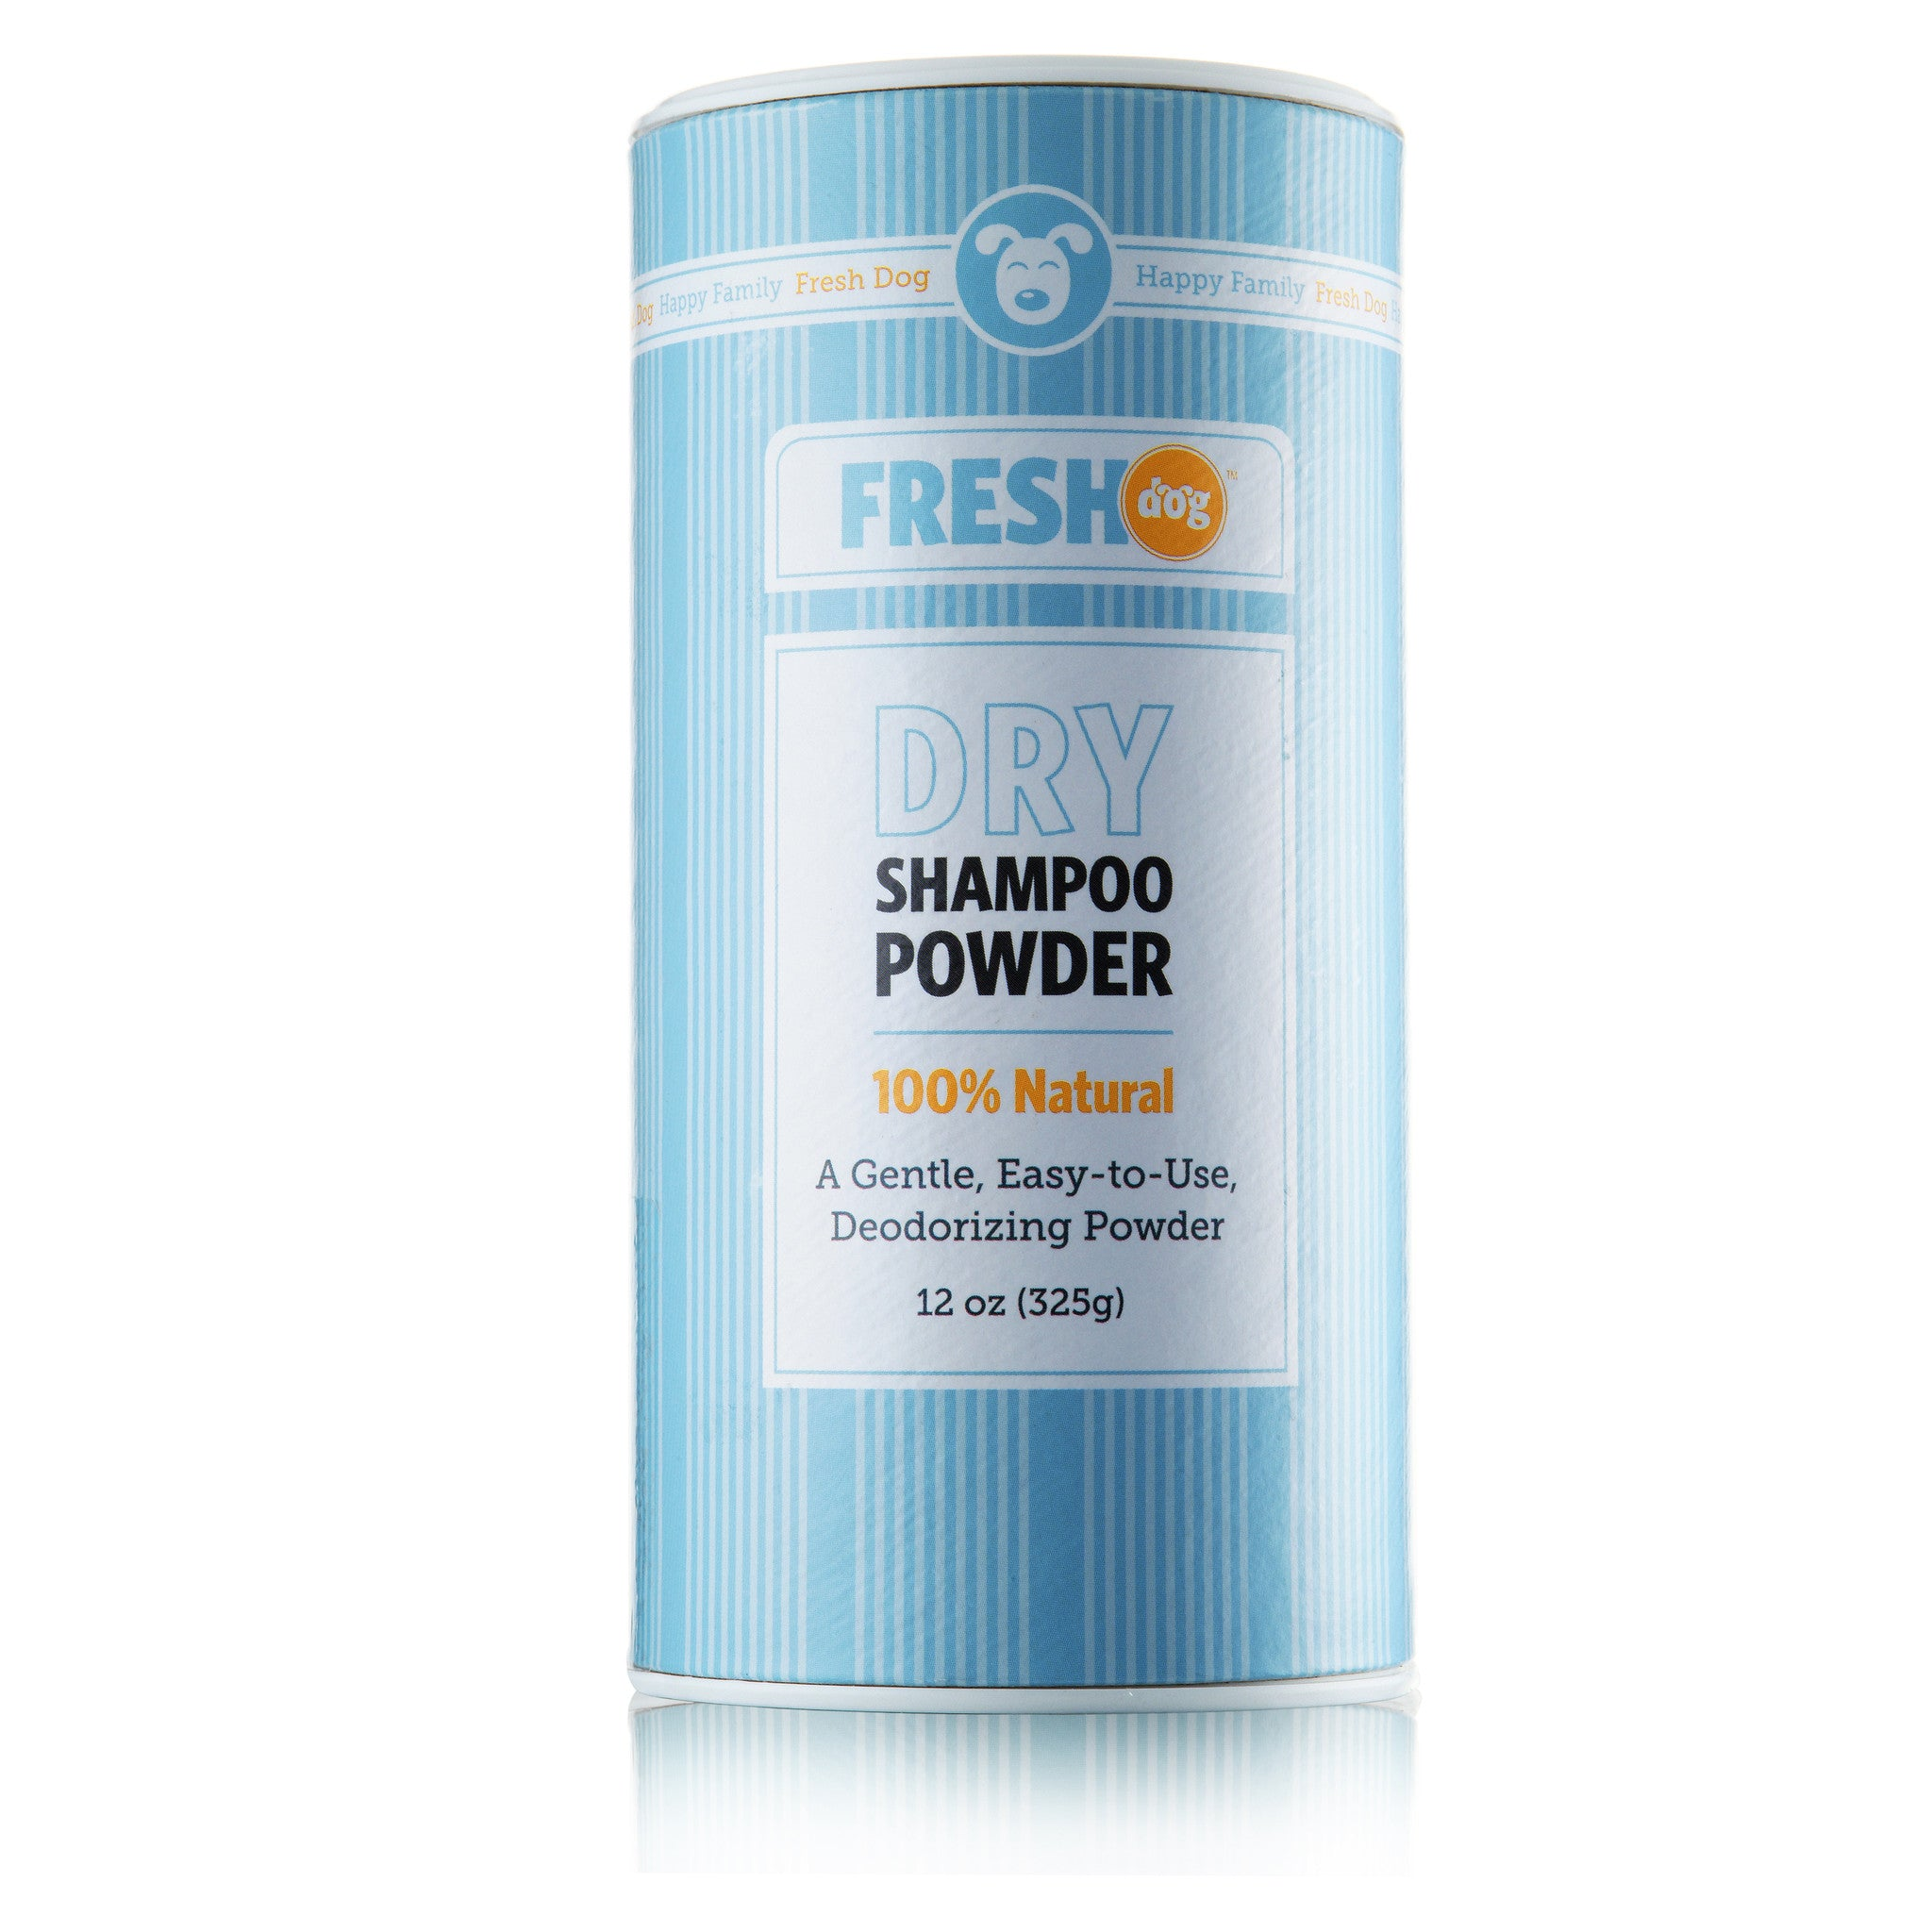 Fresh Dog All Natural Dry Shampoo Powder for Dogs & Puppies (12 oz )